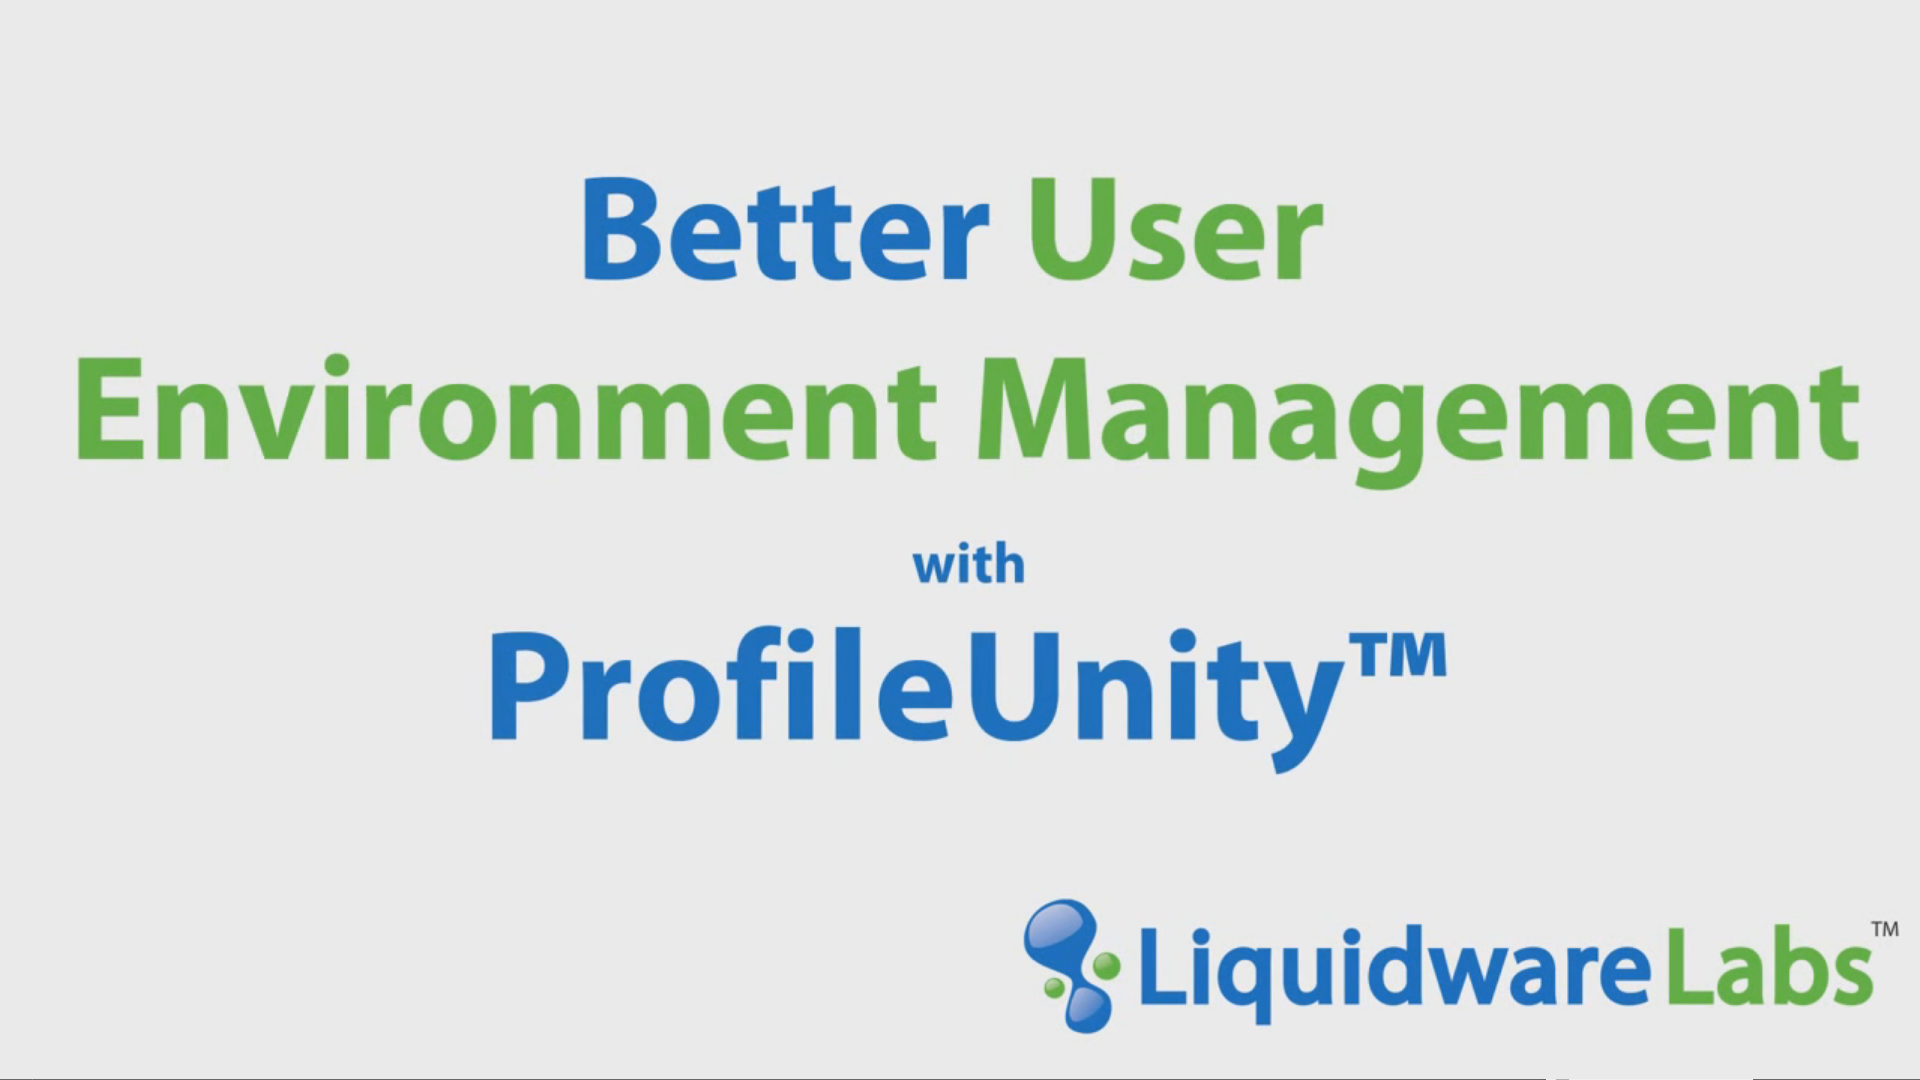 Better User Environment Management with ProfileUnity